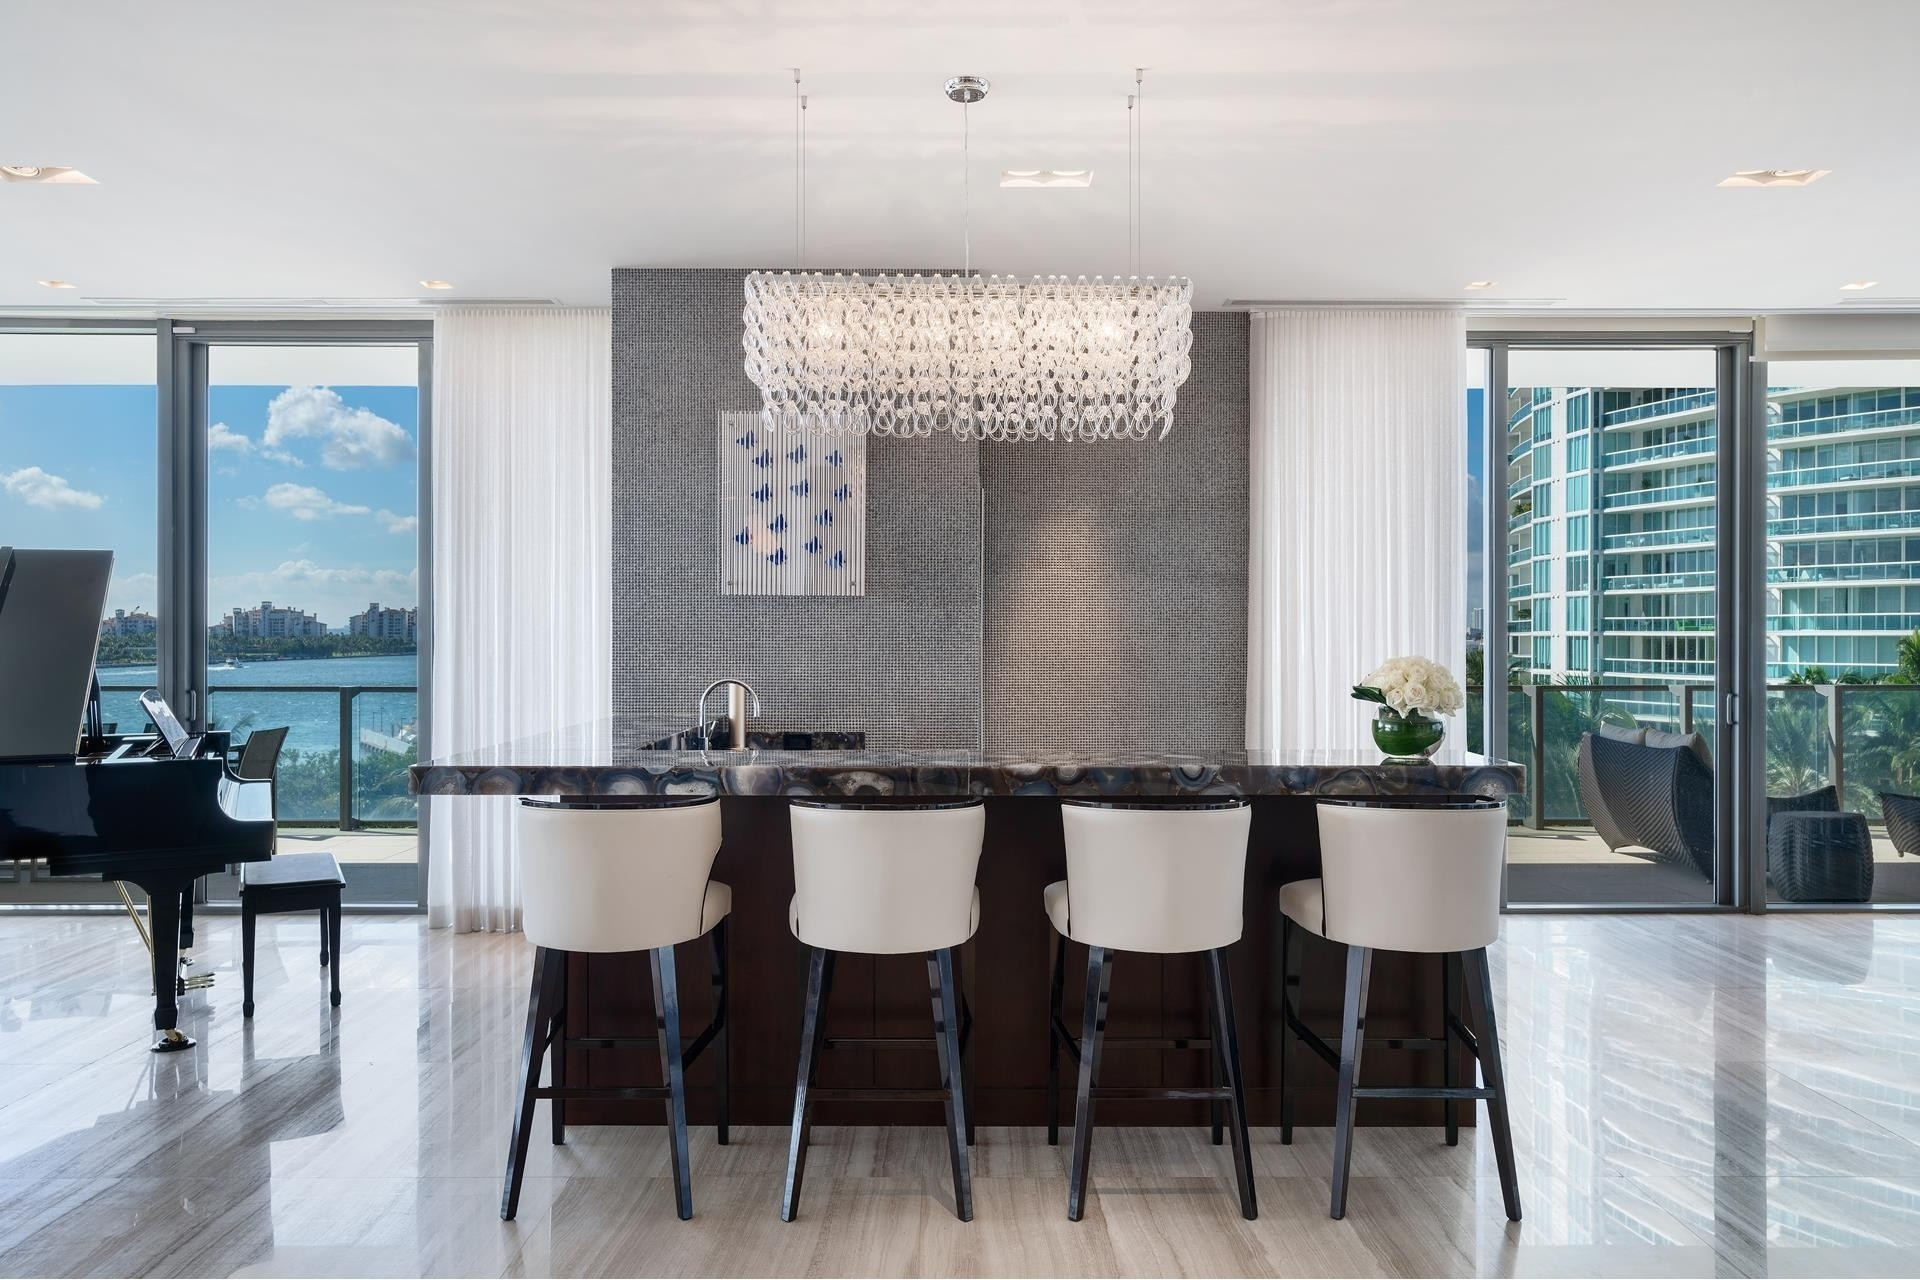 15. Condominiums for Sale at 800 S Pointe Dr , 504 South Point, Miami Beach, FL 33139